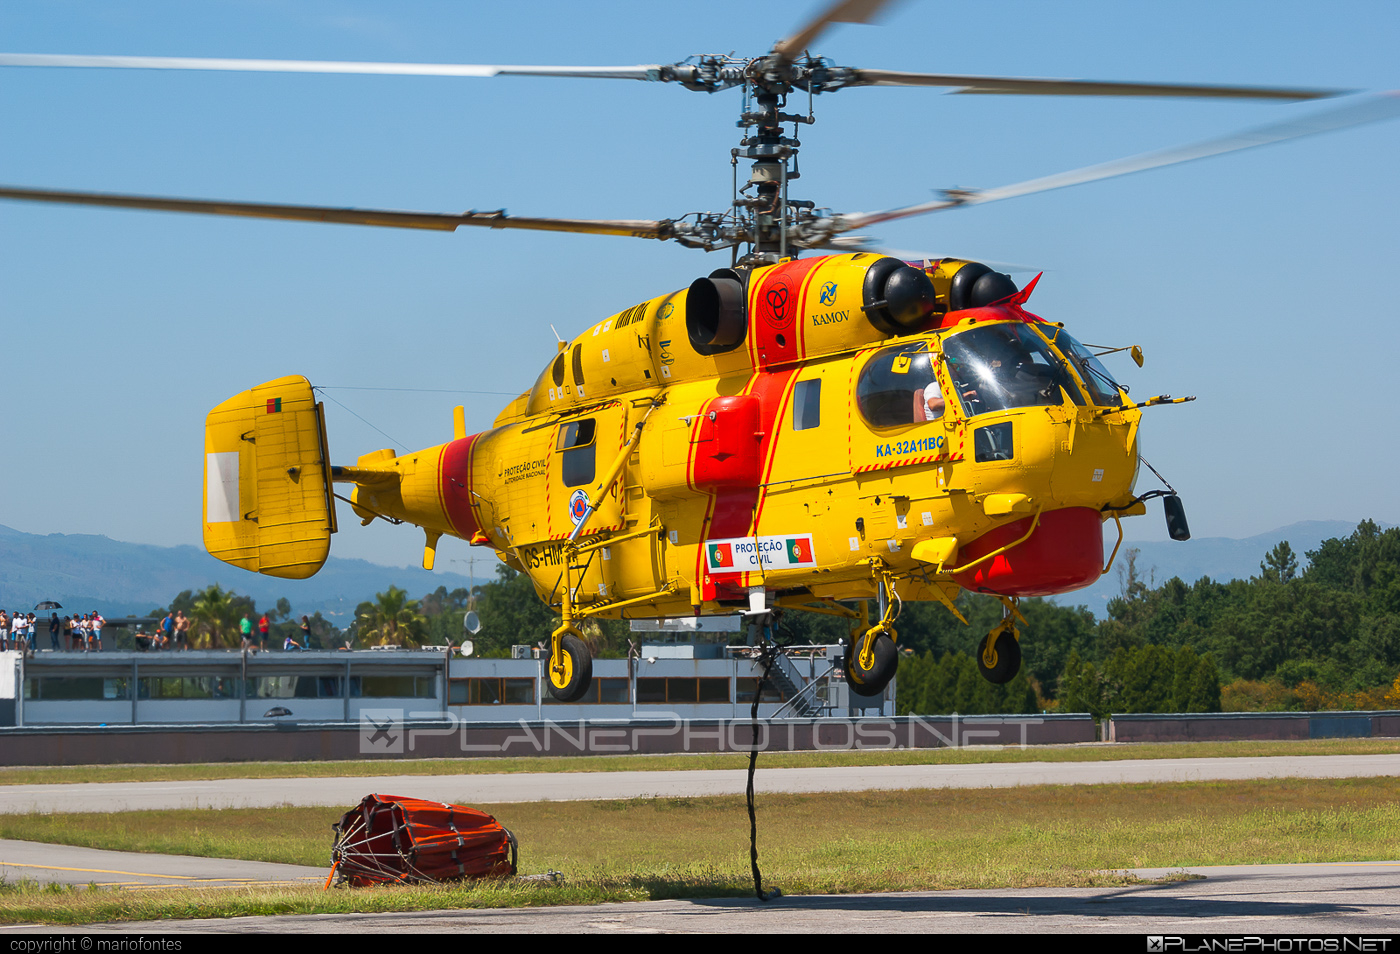 Kamov Ka-32A11BC - CS-HMM operated by Proteção Civil (Portugal Civil Protection) #ka32 #ka32a11bc #kamov #kamov32 #kamovka32 #portugalcivilprotection #protecaocivil